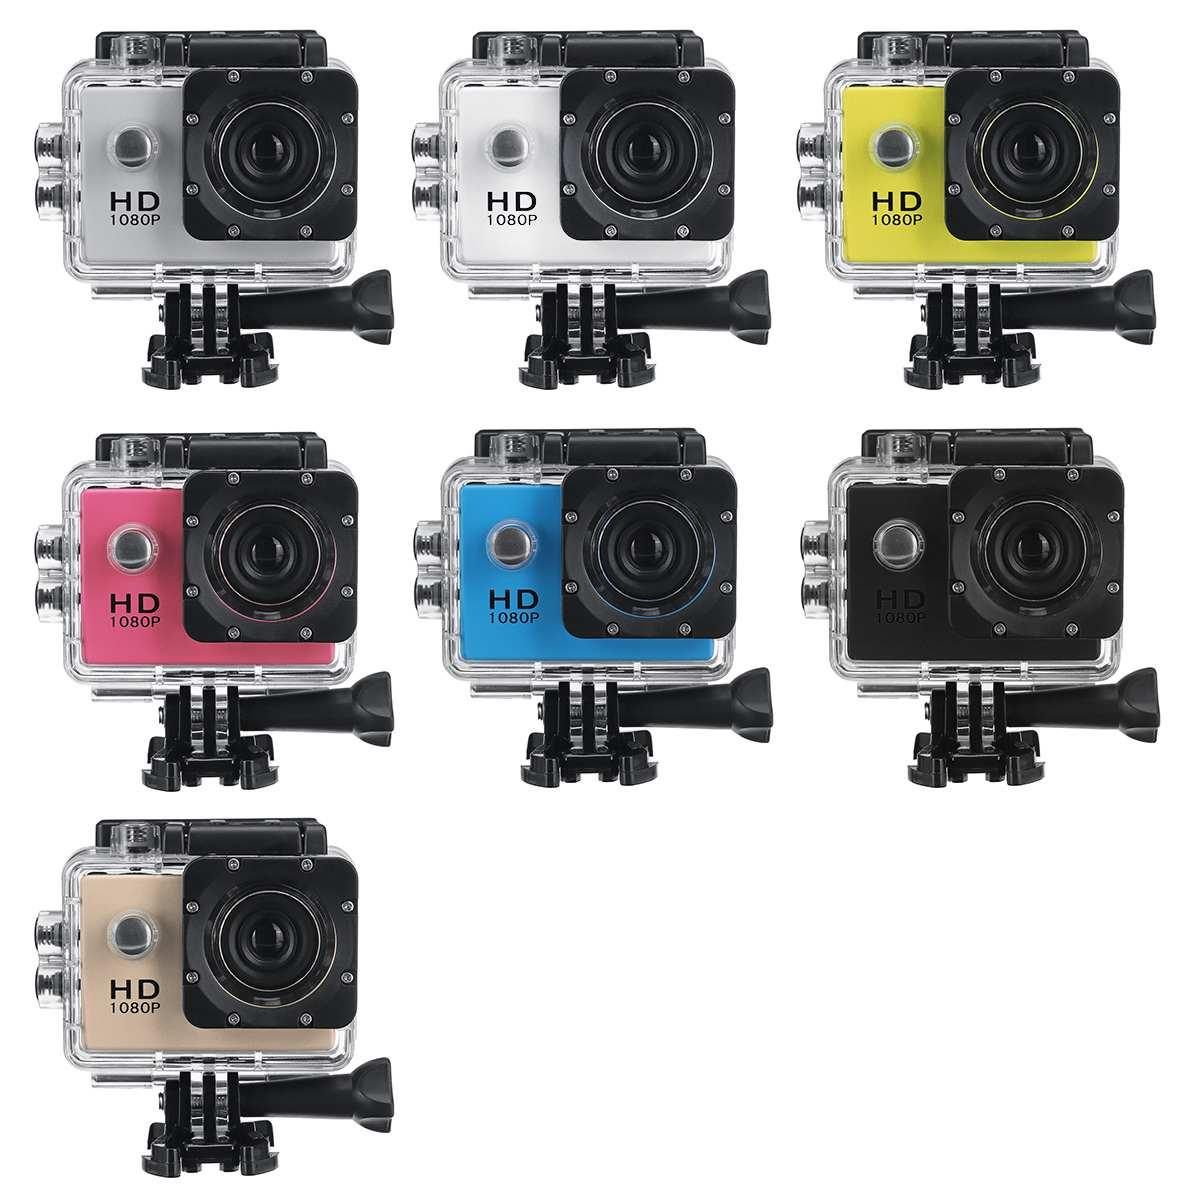 1080P 2.0'' Camera Recorder LCD Screen Waterproof Outdoor Skiing Driving Sport DV Camcorder Multifunctional